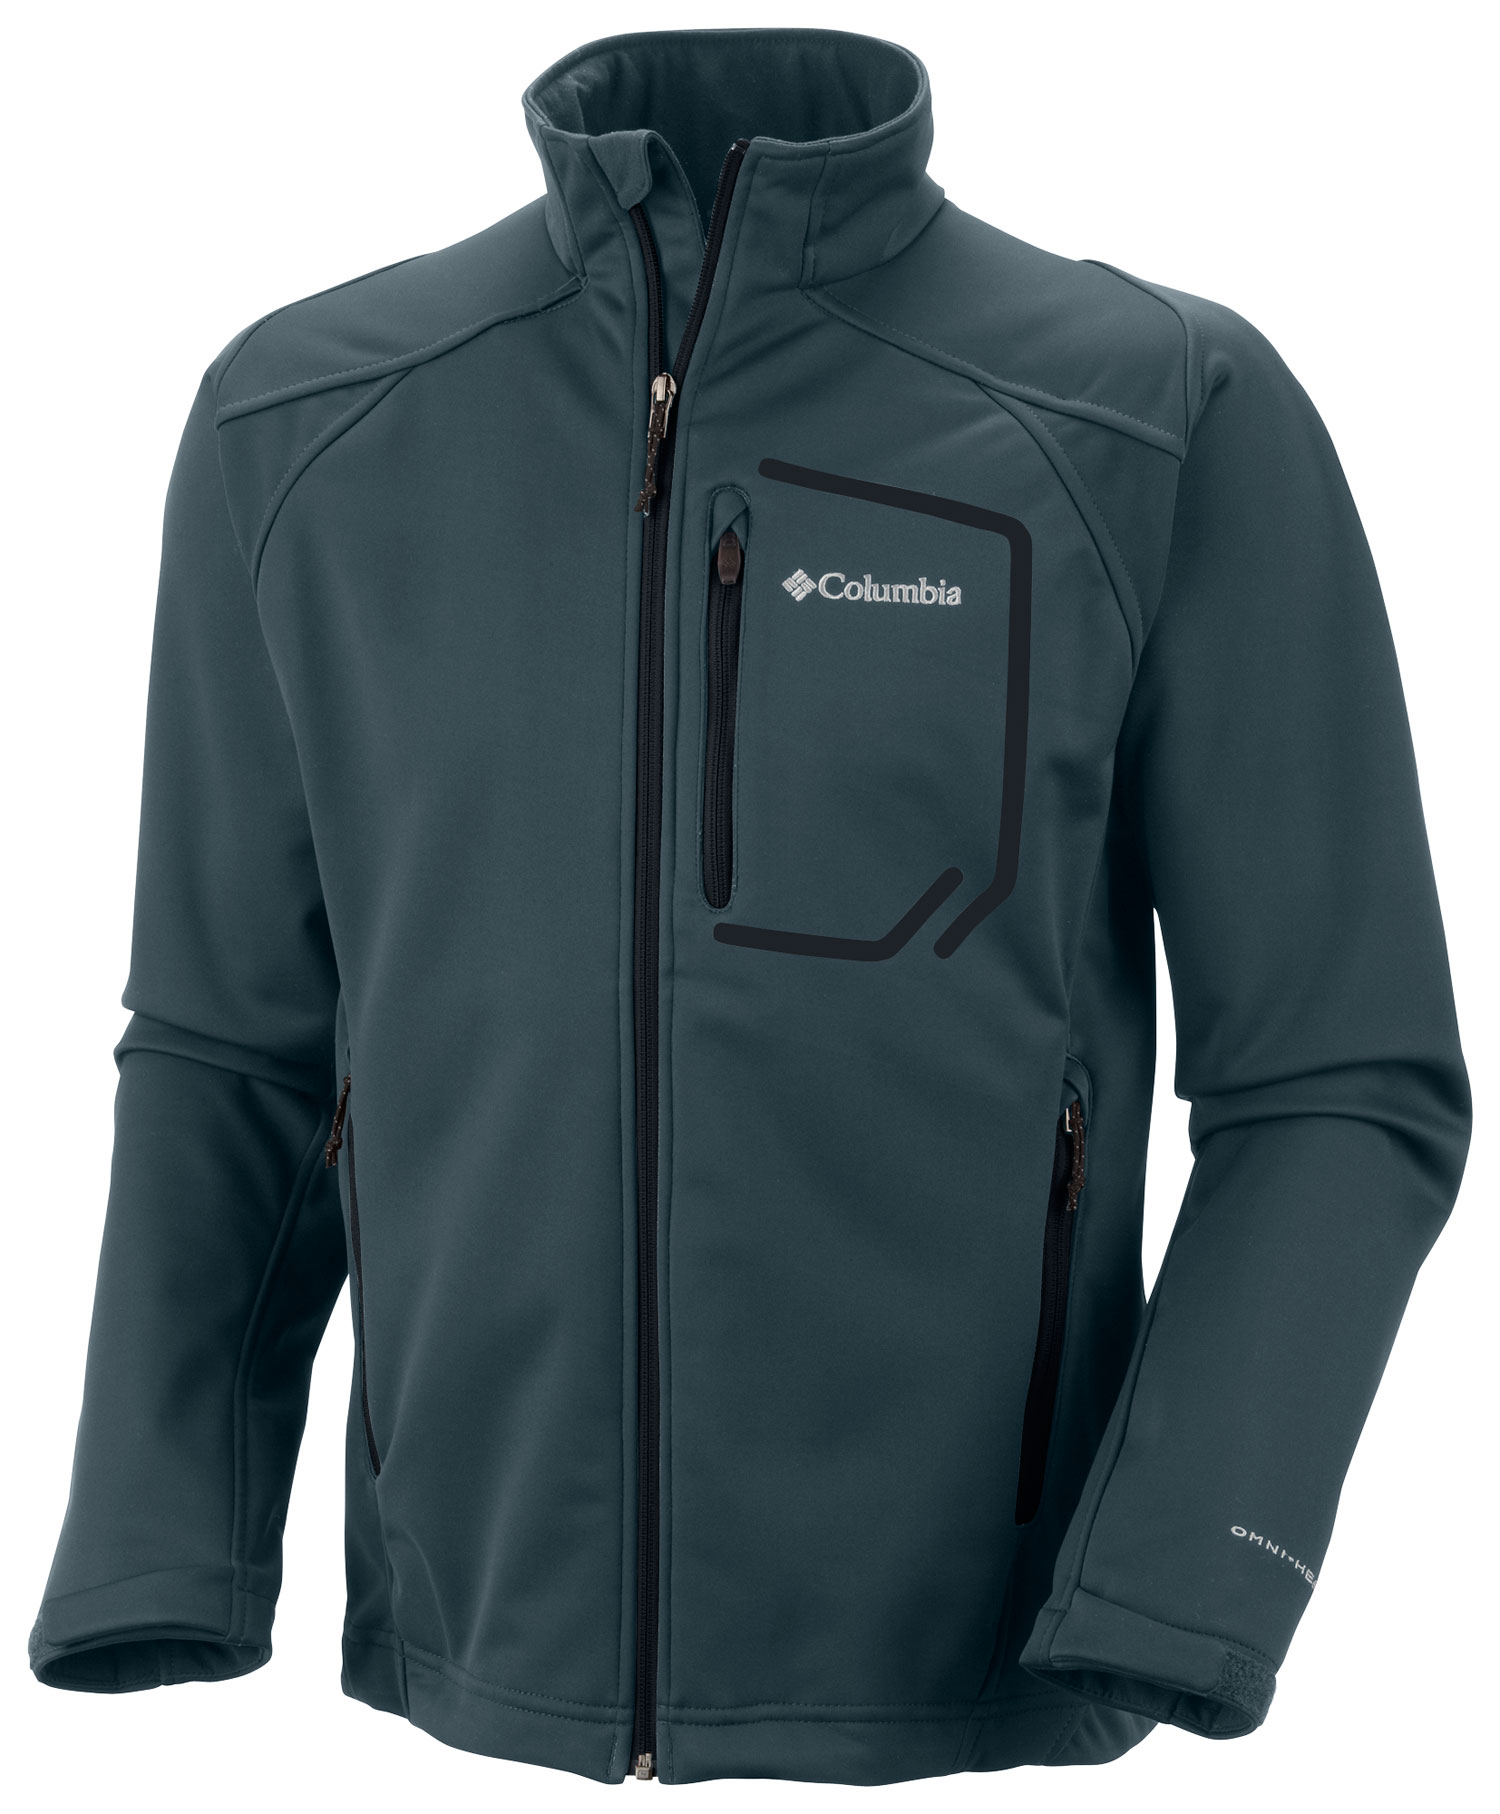 Key Features of the Columbia Key Three II Softshell Jacket: FABRIC Shell: 100% polyester 3L Butter Heat softshell. Lining: 100% polyester Reflective print tricot. FIT Active Omni-Wind Block windproof Omni-Heat thermal reflective Omni-Shield advanced repellency Bonded softshell 2-way comfort stretch Drawcord adjustable hem Zip-closed chest pocket Zip-closed hand pockets Abrasion resistant chin guard - $111.95